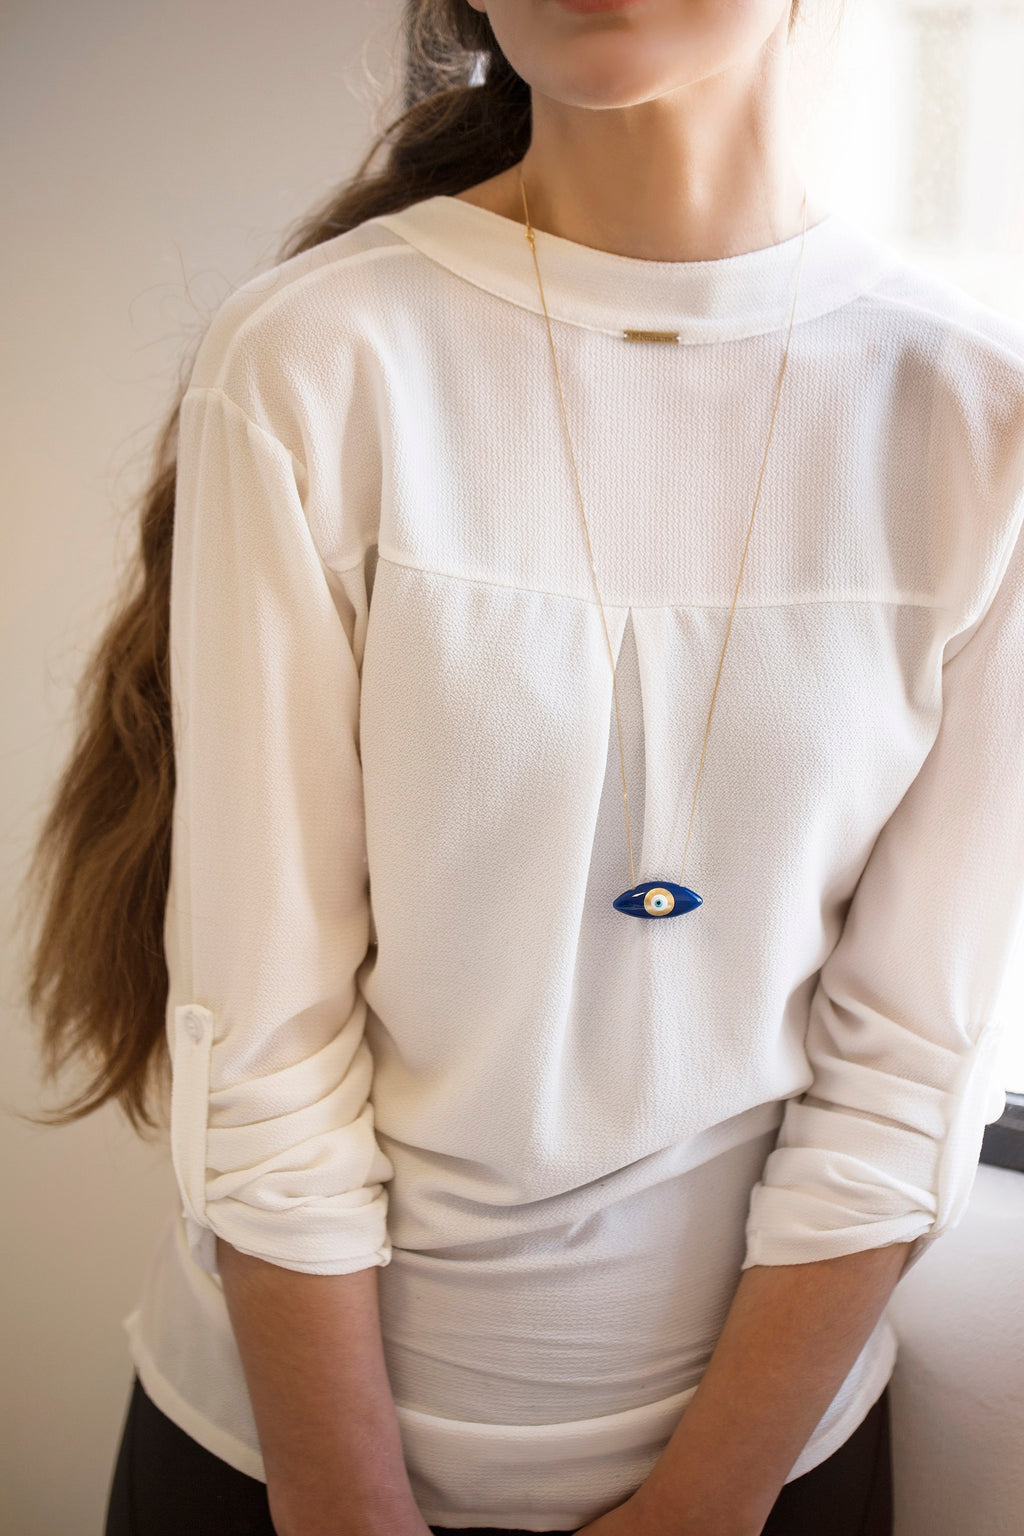 "ALMOND SHAPE ""EYE"" NECKLACE by SOFIA PAPALEXIOU"